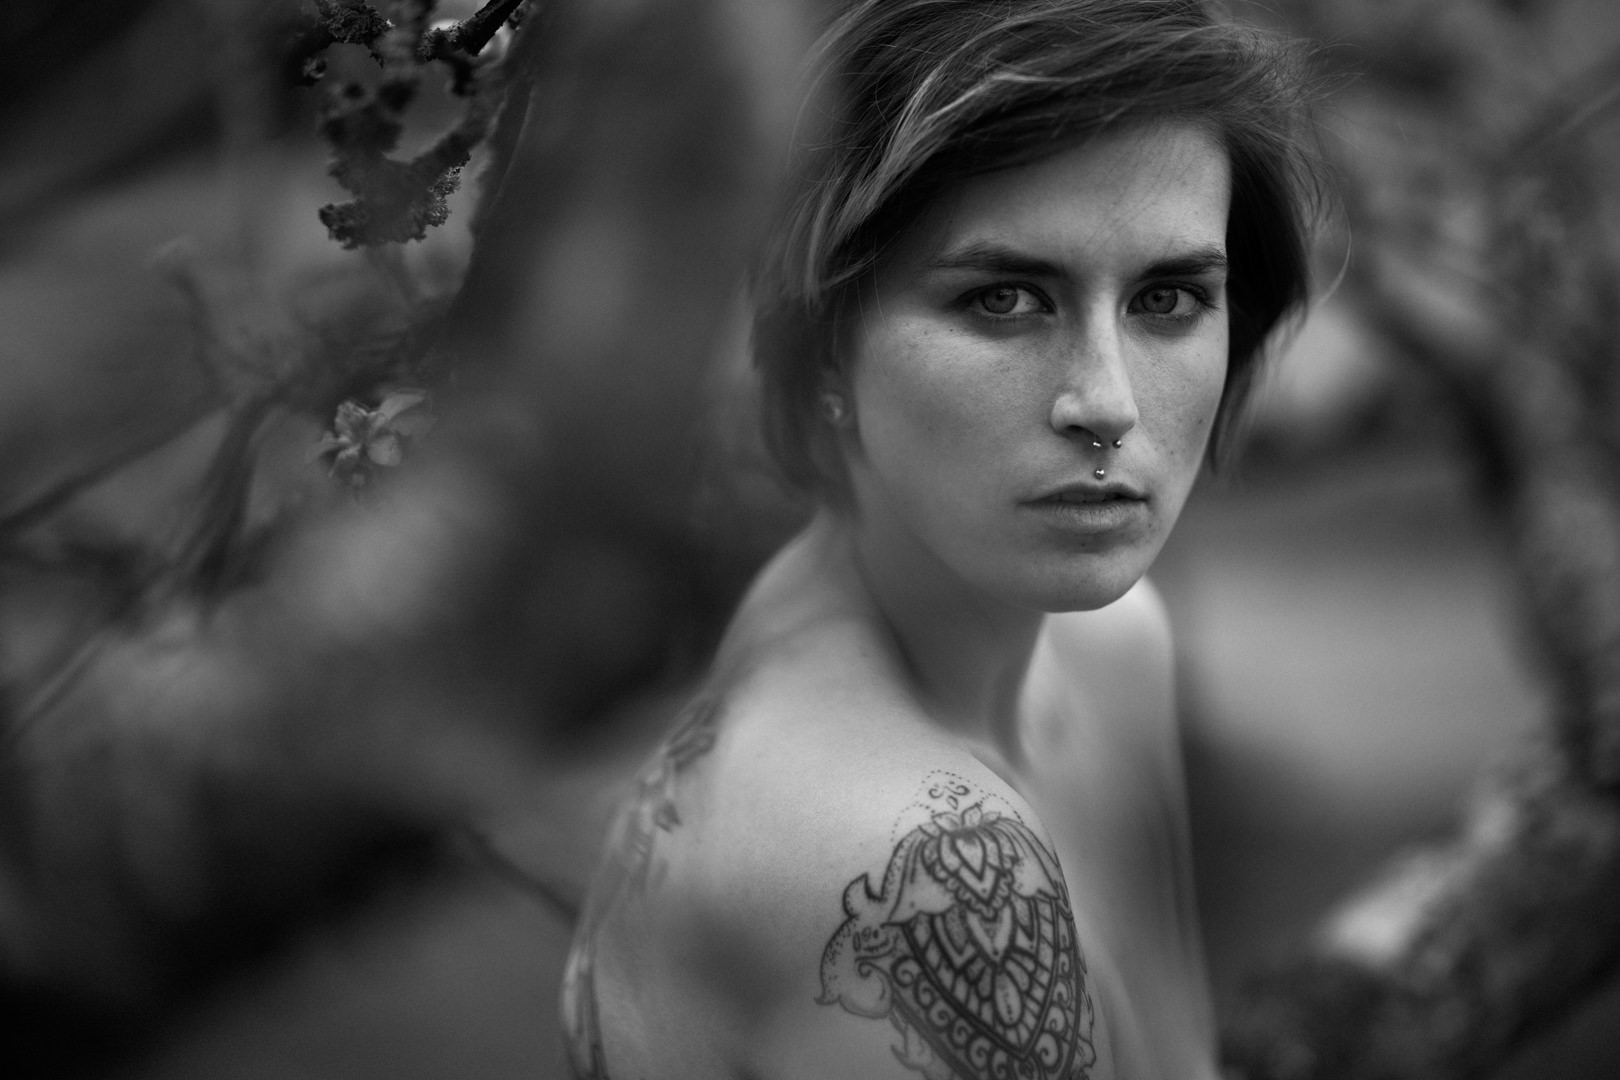 Florian weiler photography estelle nowack tattoo model - Mobel ravensburg ...